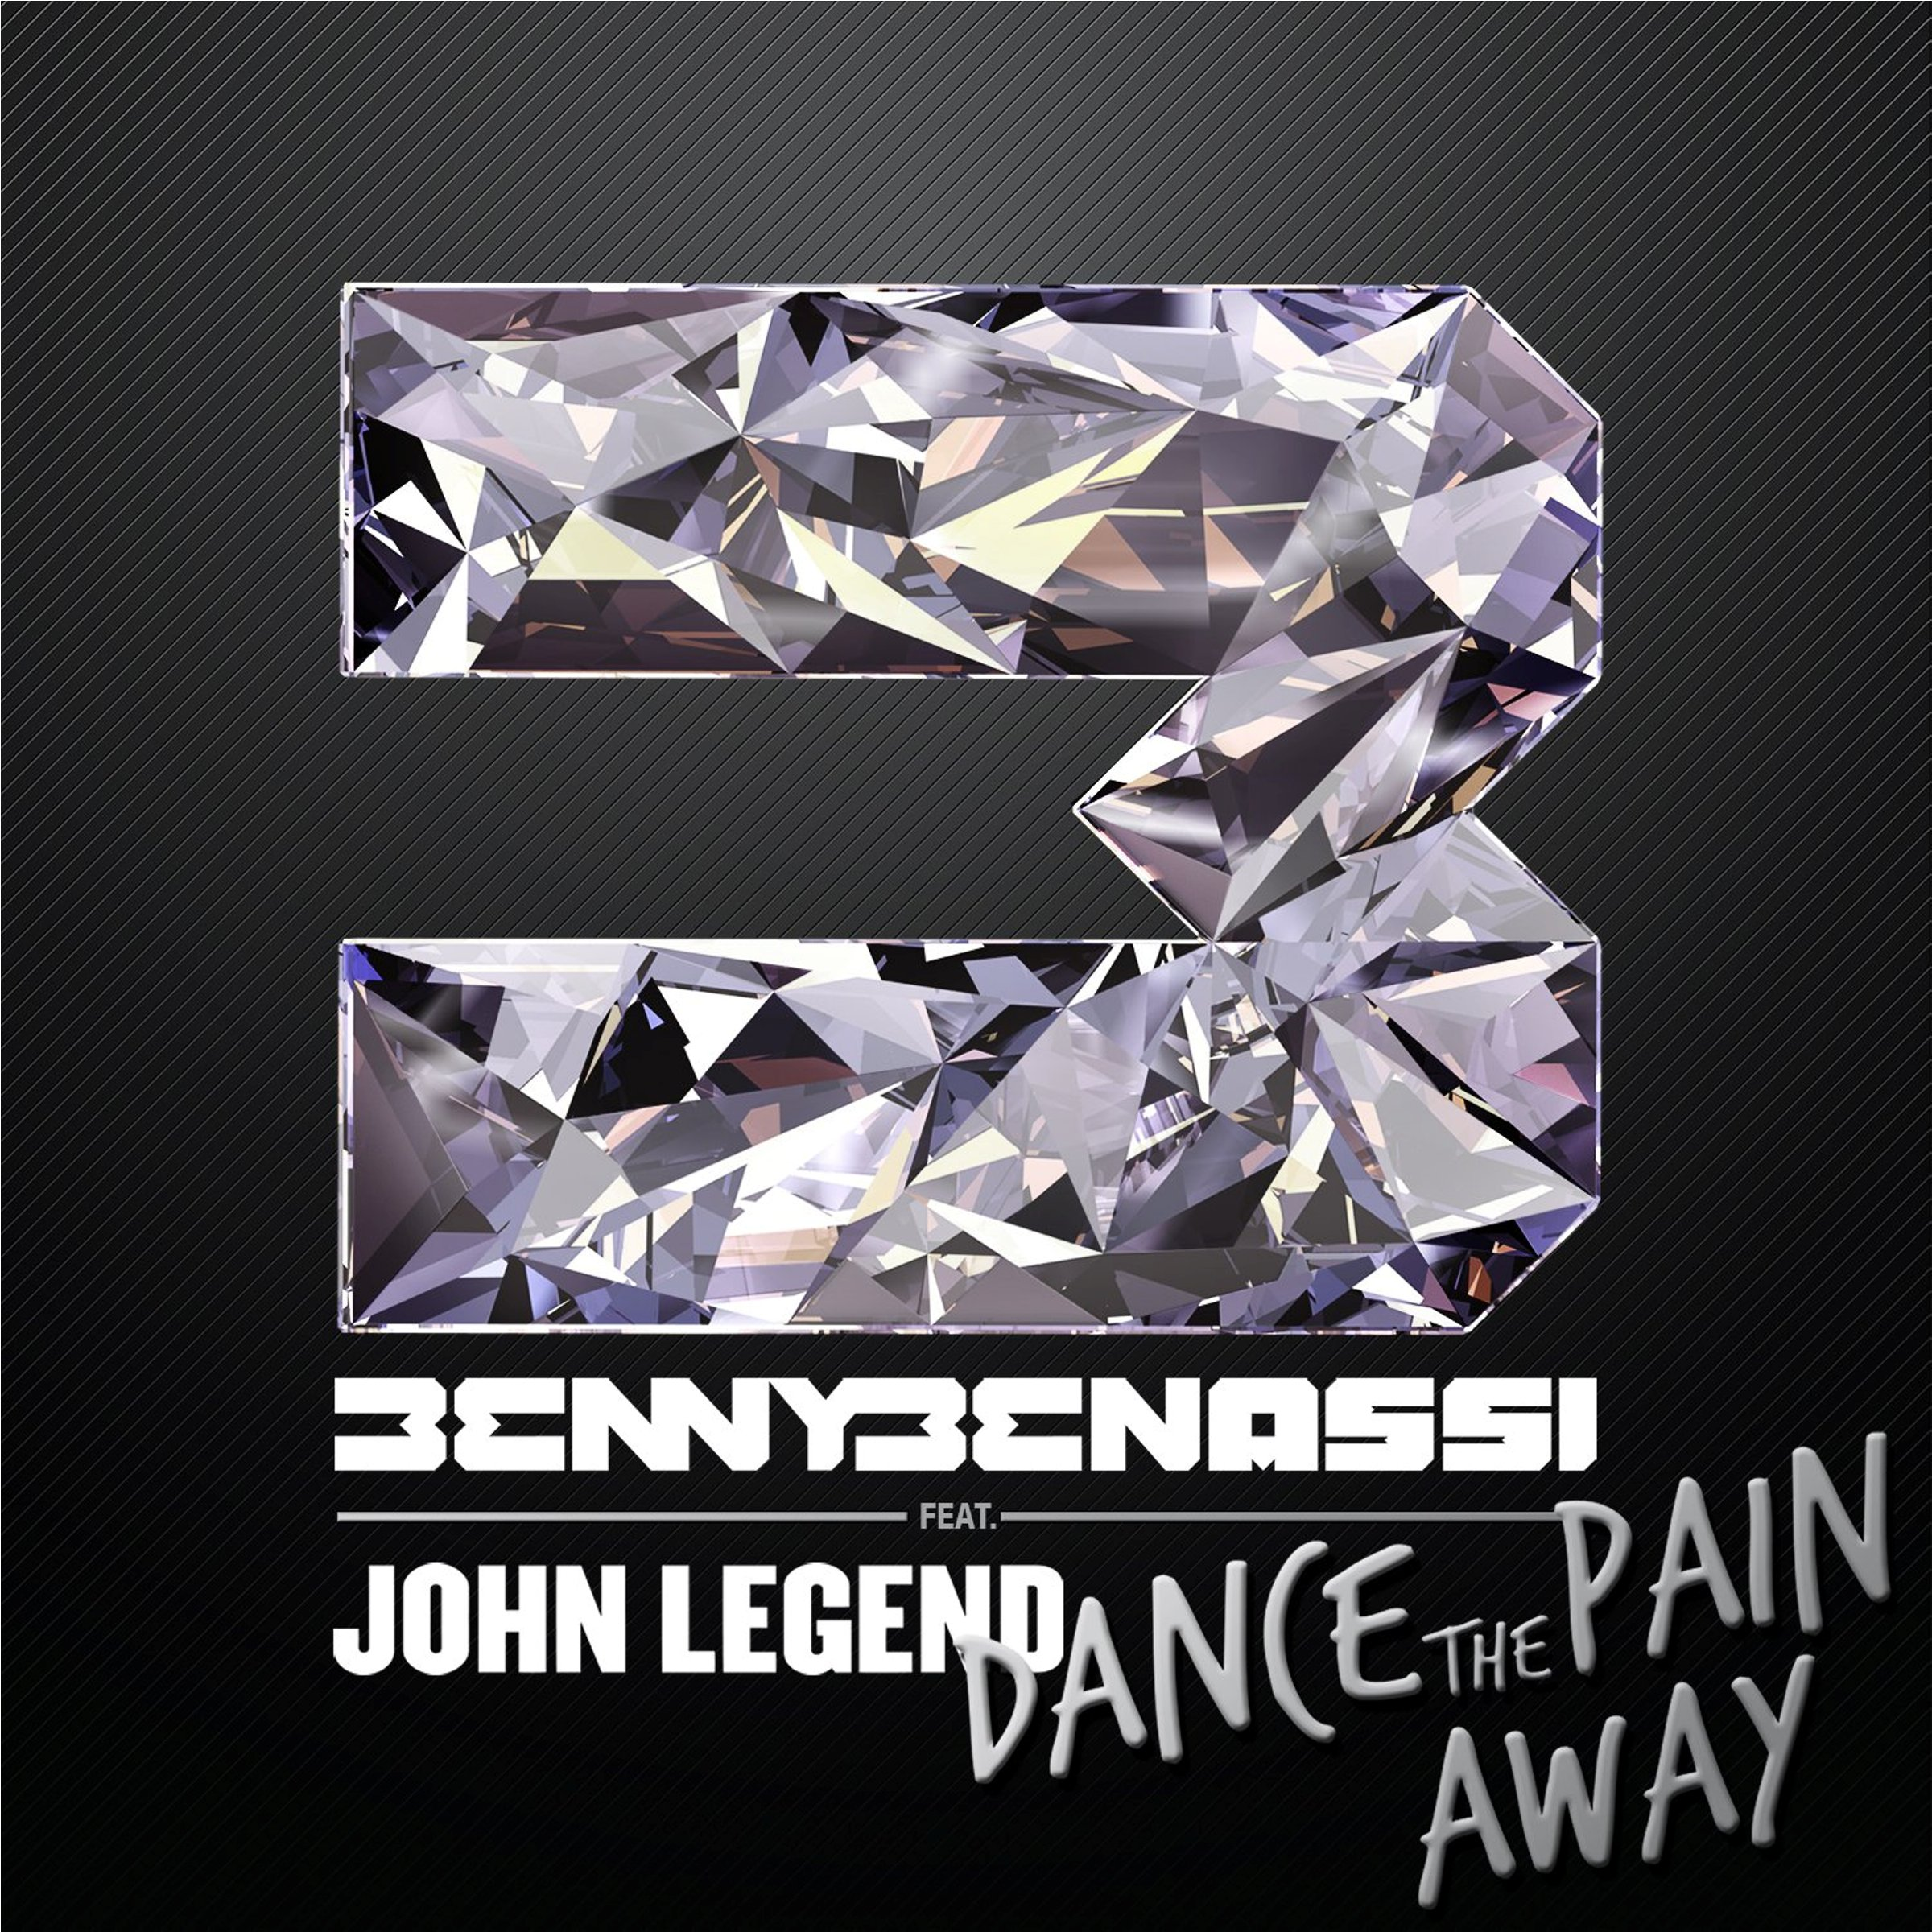 Benny Benassi feat. John Legend - Dance The Pain Away (2016)